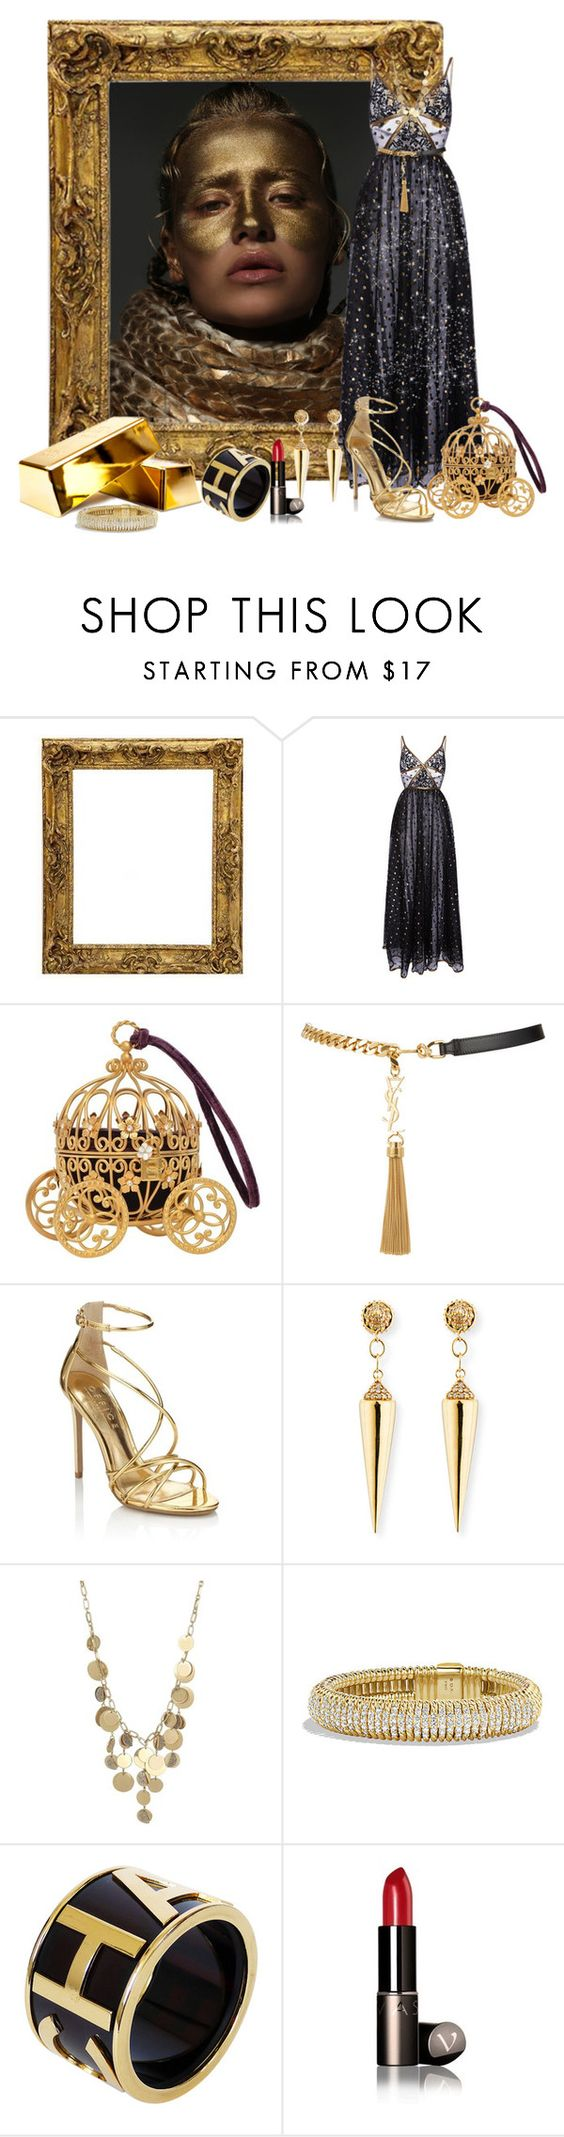 """Black &Gold"" by elona-makavelli ❤ liked on Polyvore featuring Elie Saab, Yves Saint Laurent, Lipsy, Sydney Evan, Kenneth Cole, David Yurman and Chanel"